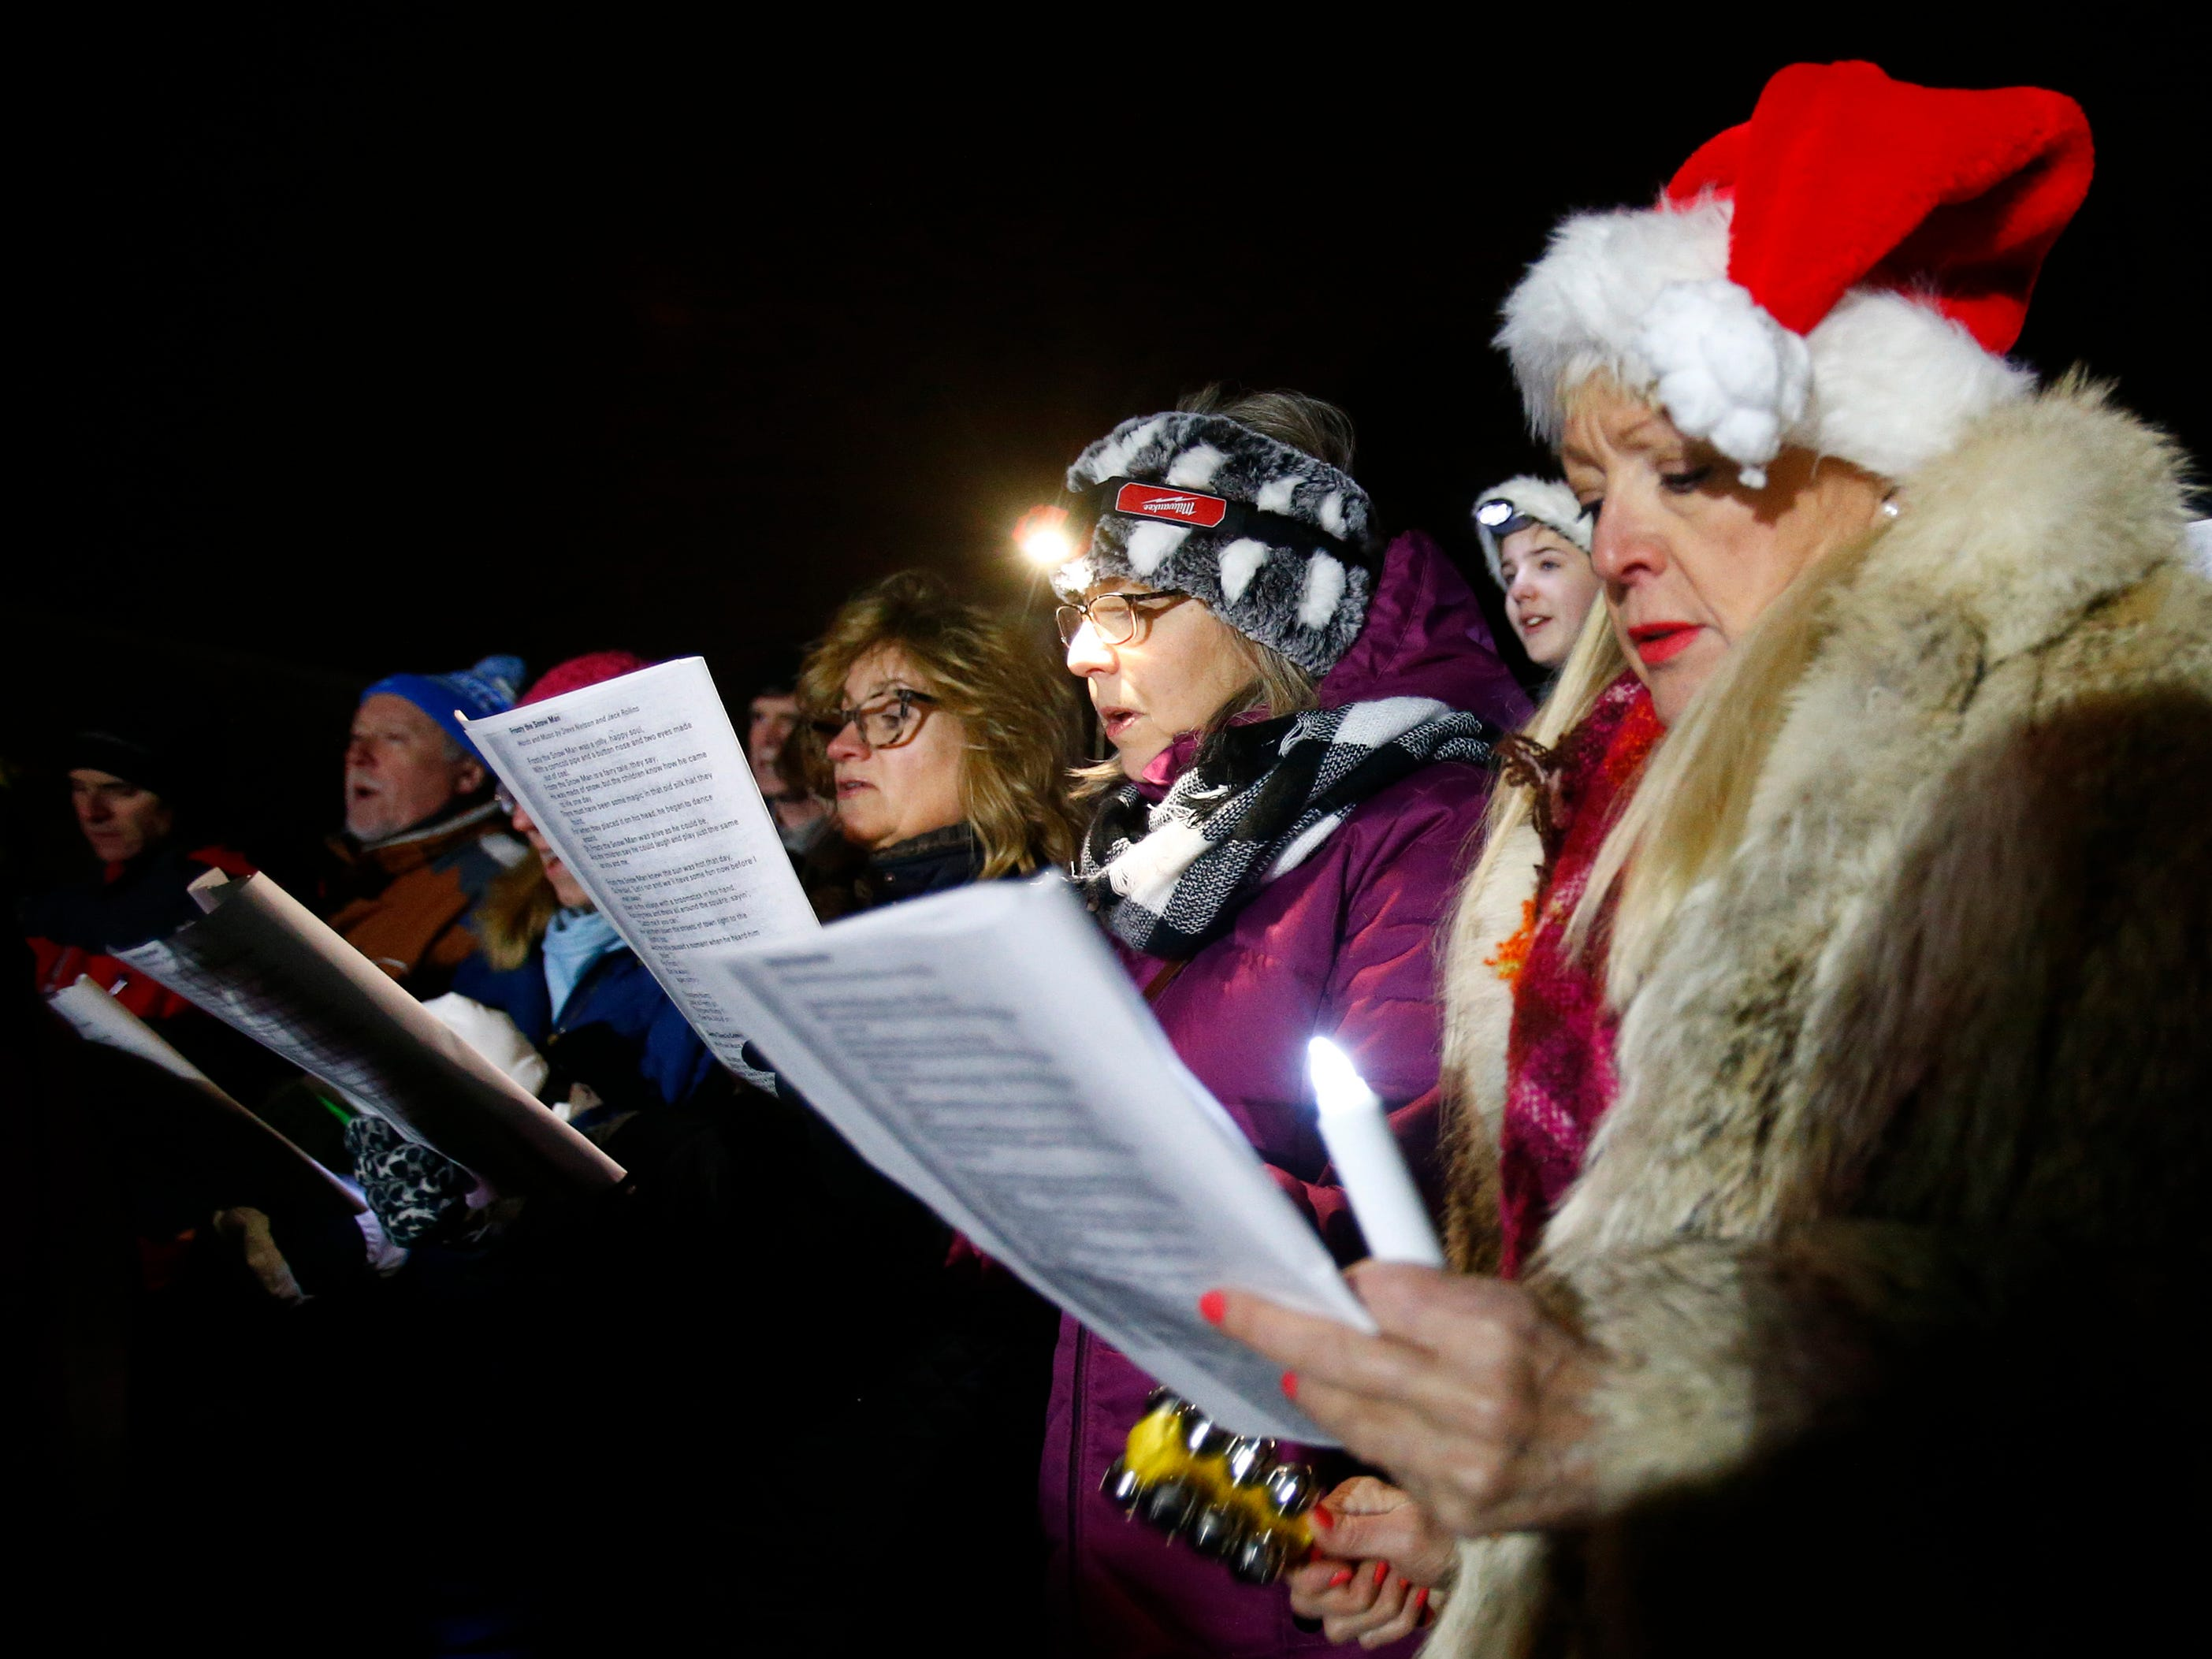 Members of the St. Charles Choir sing seasonal music during the Hartland Lights on Nov. 30.